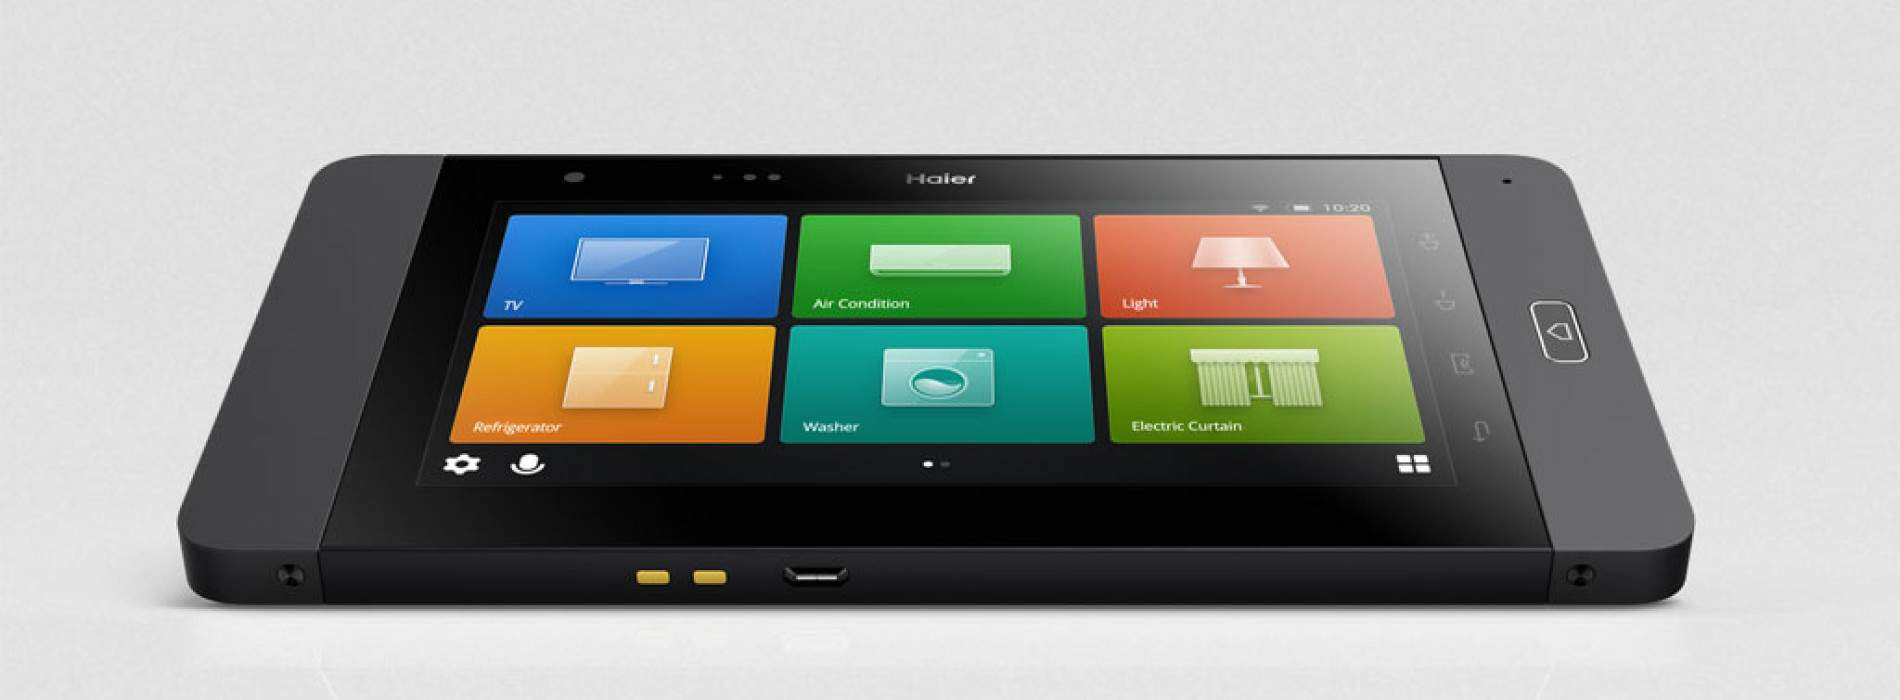 Smart Home Centre de Haier: Una tablet para la casa